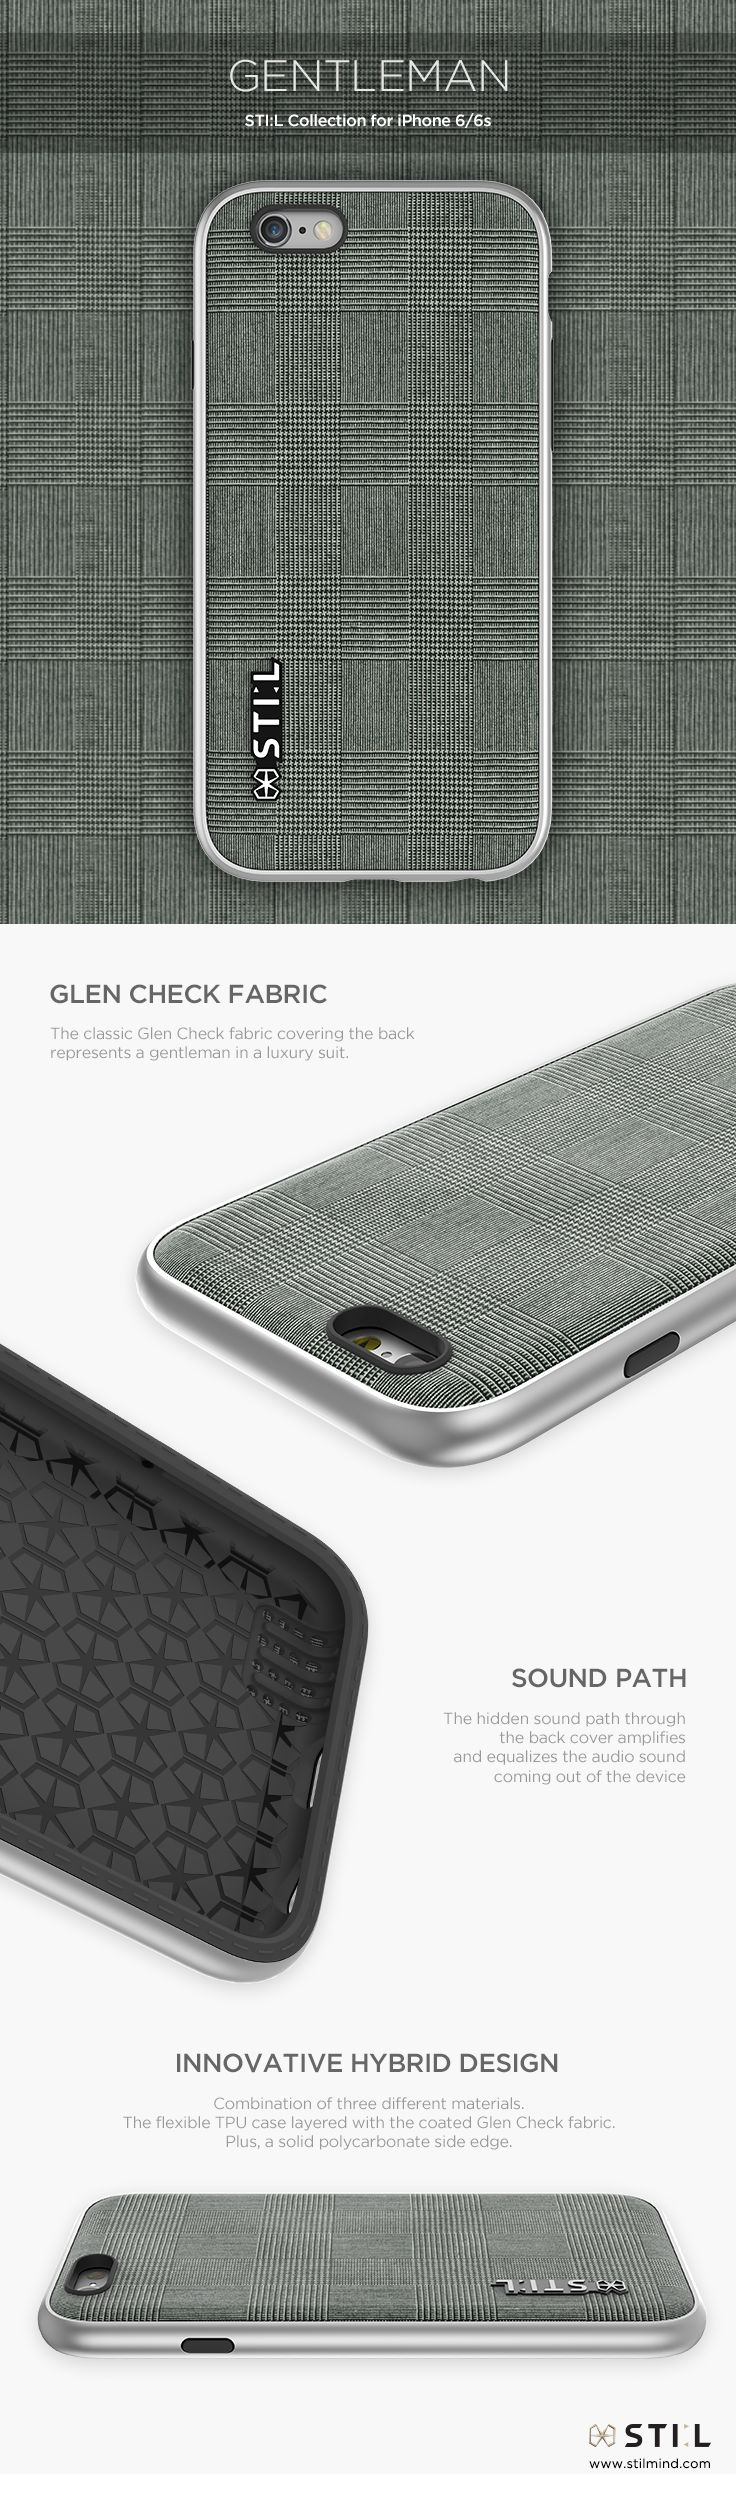 24 Best Good Taste For Life Images On Pinterest Desks Technology Apple Iphone 6 Mplw Hybrid Film Gentleman A In Classic Luxury Suit Available Color Grey Glencheck